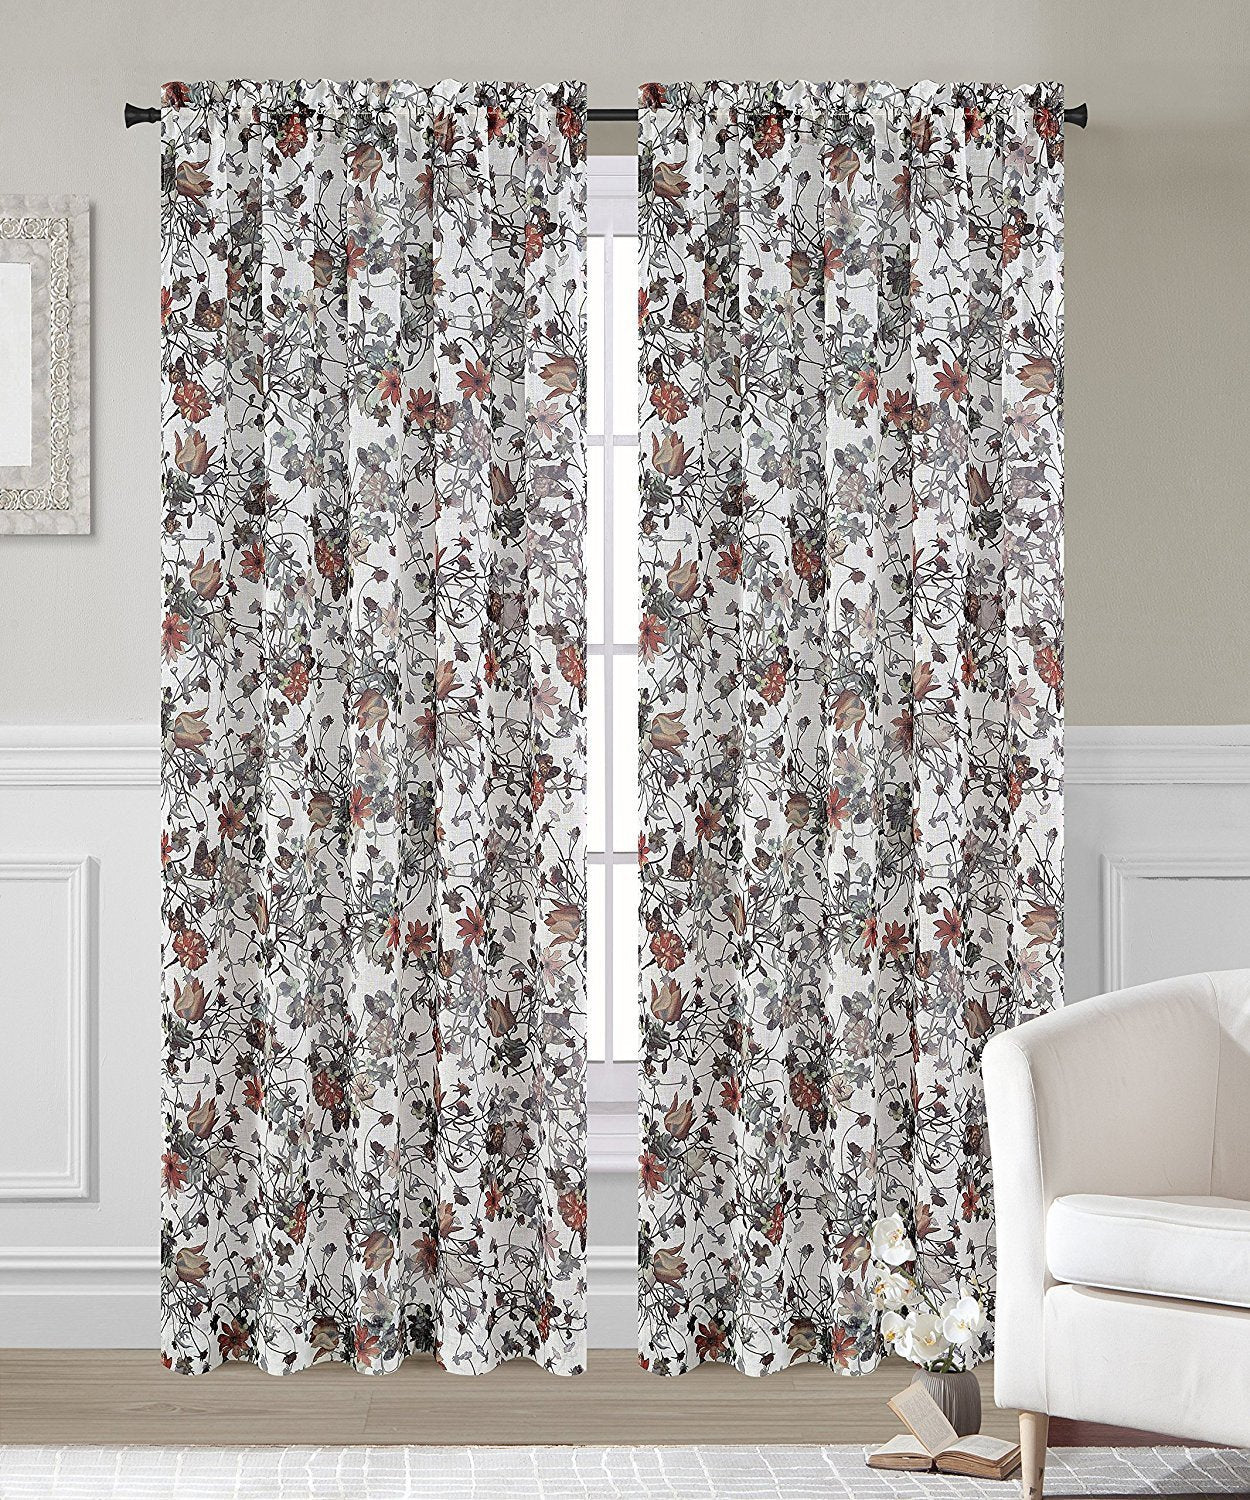 Garden Set of 2 Faux Linen Sheer Curtain Panels